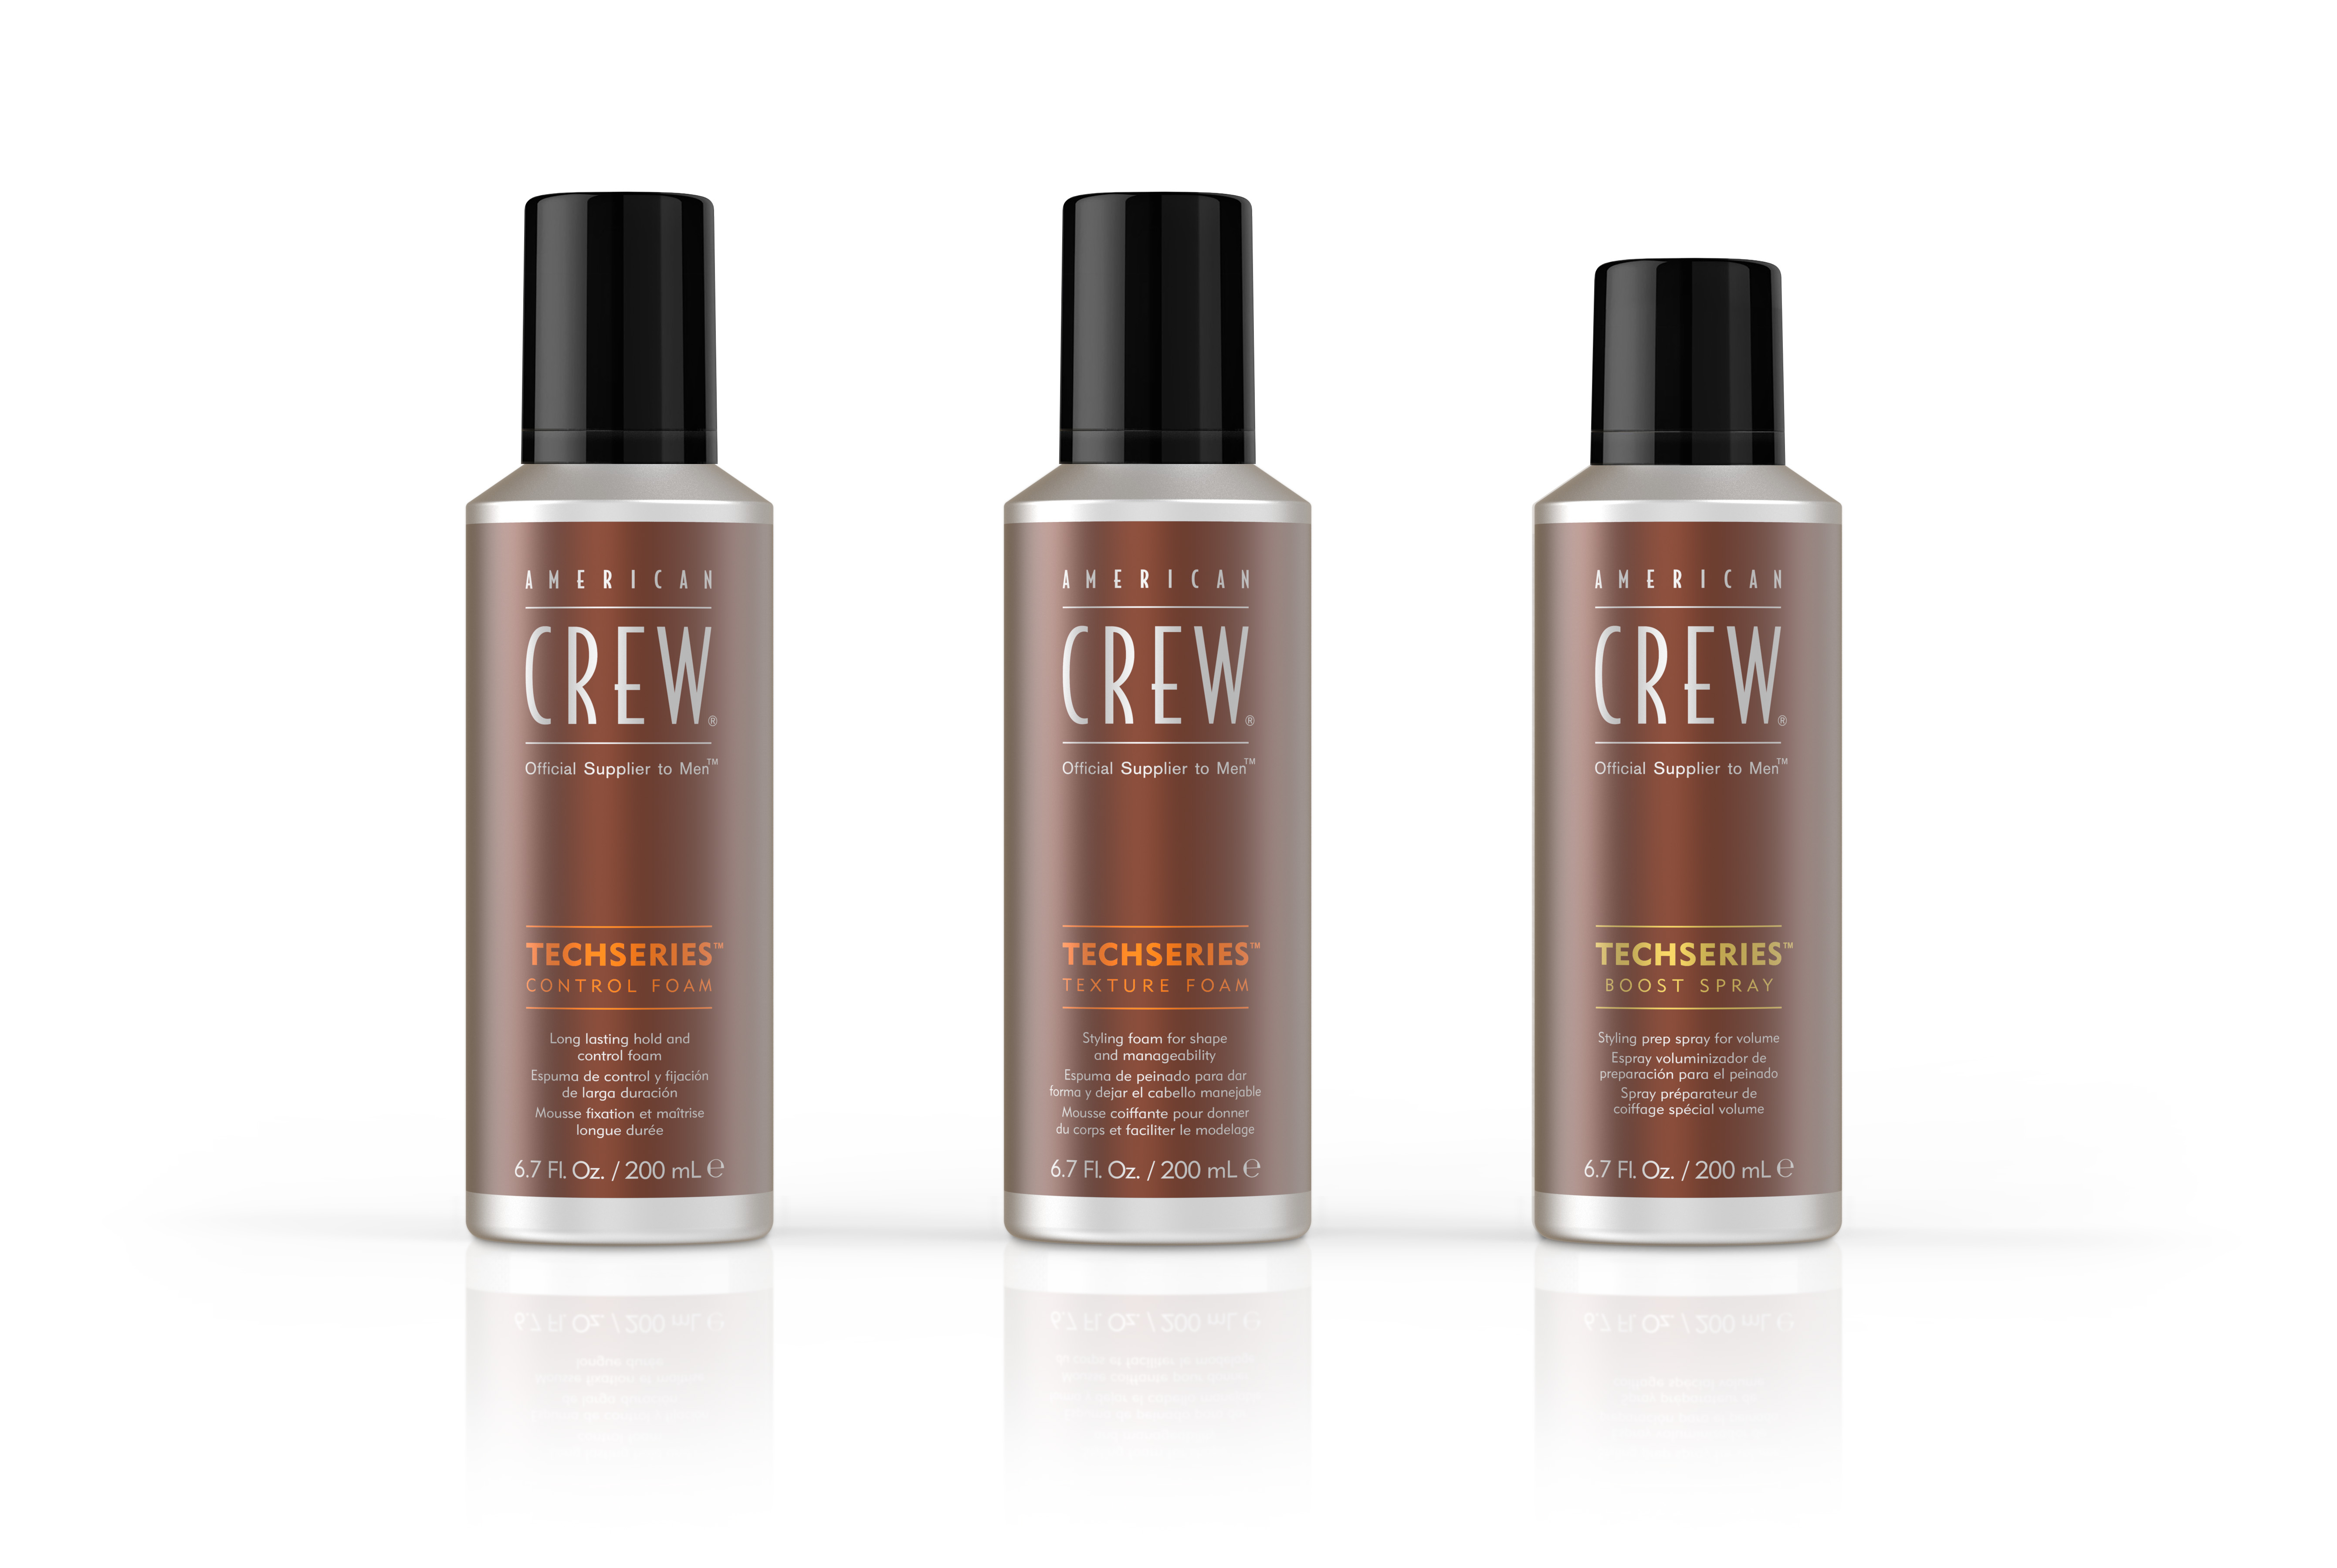 GAMME TECH SERIES AMERICAN CREW